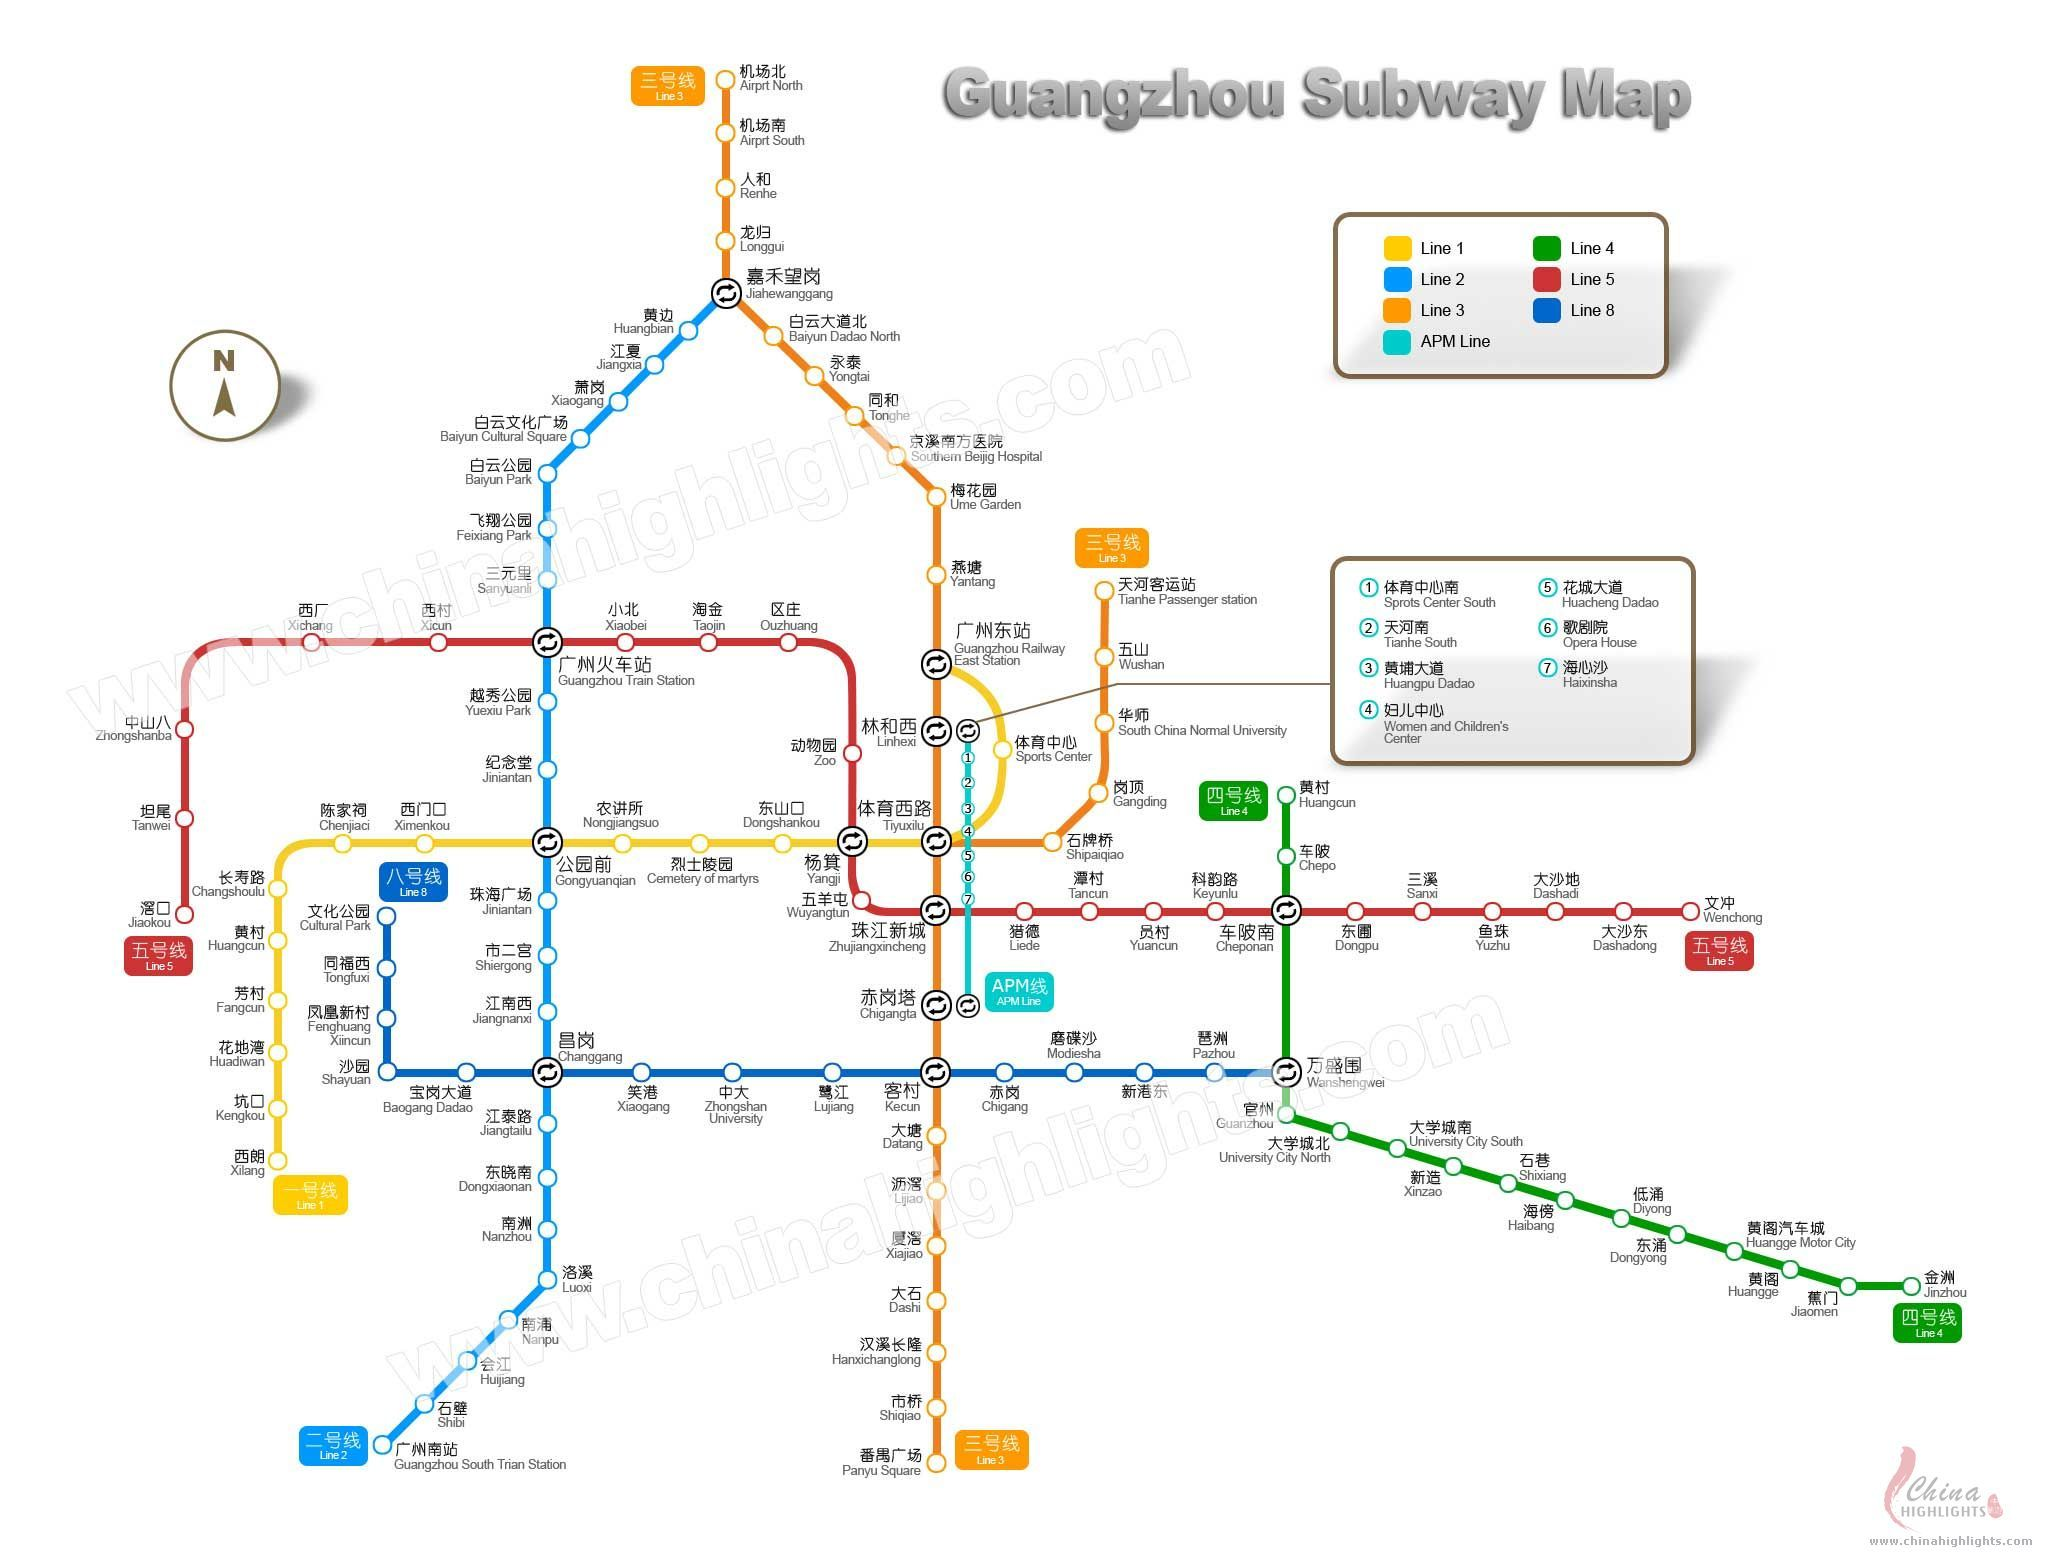 Guangzhou Subway Map How On Earth Is This Going To Work For A